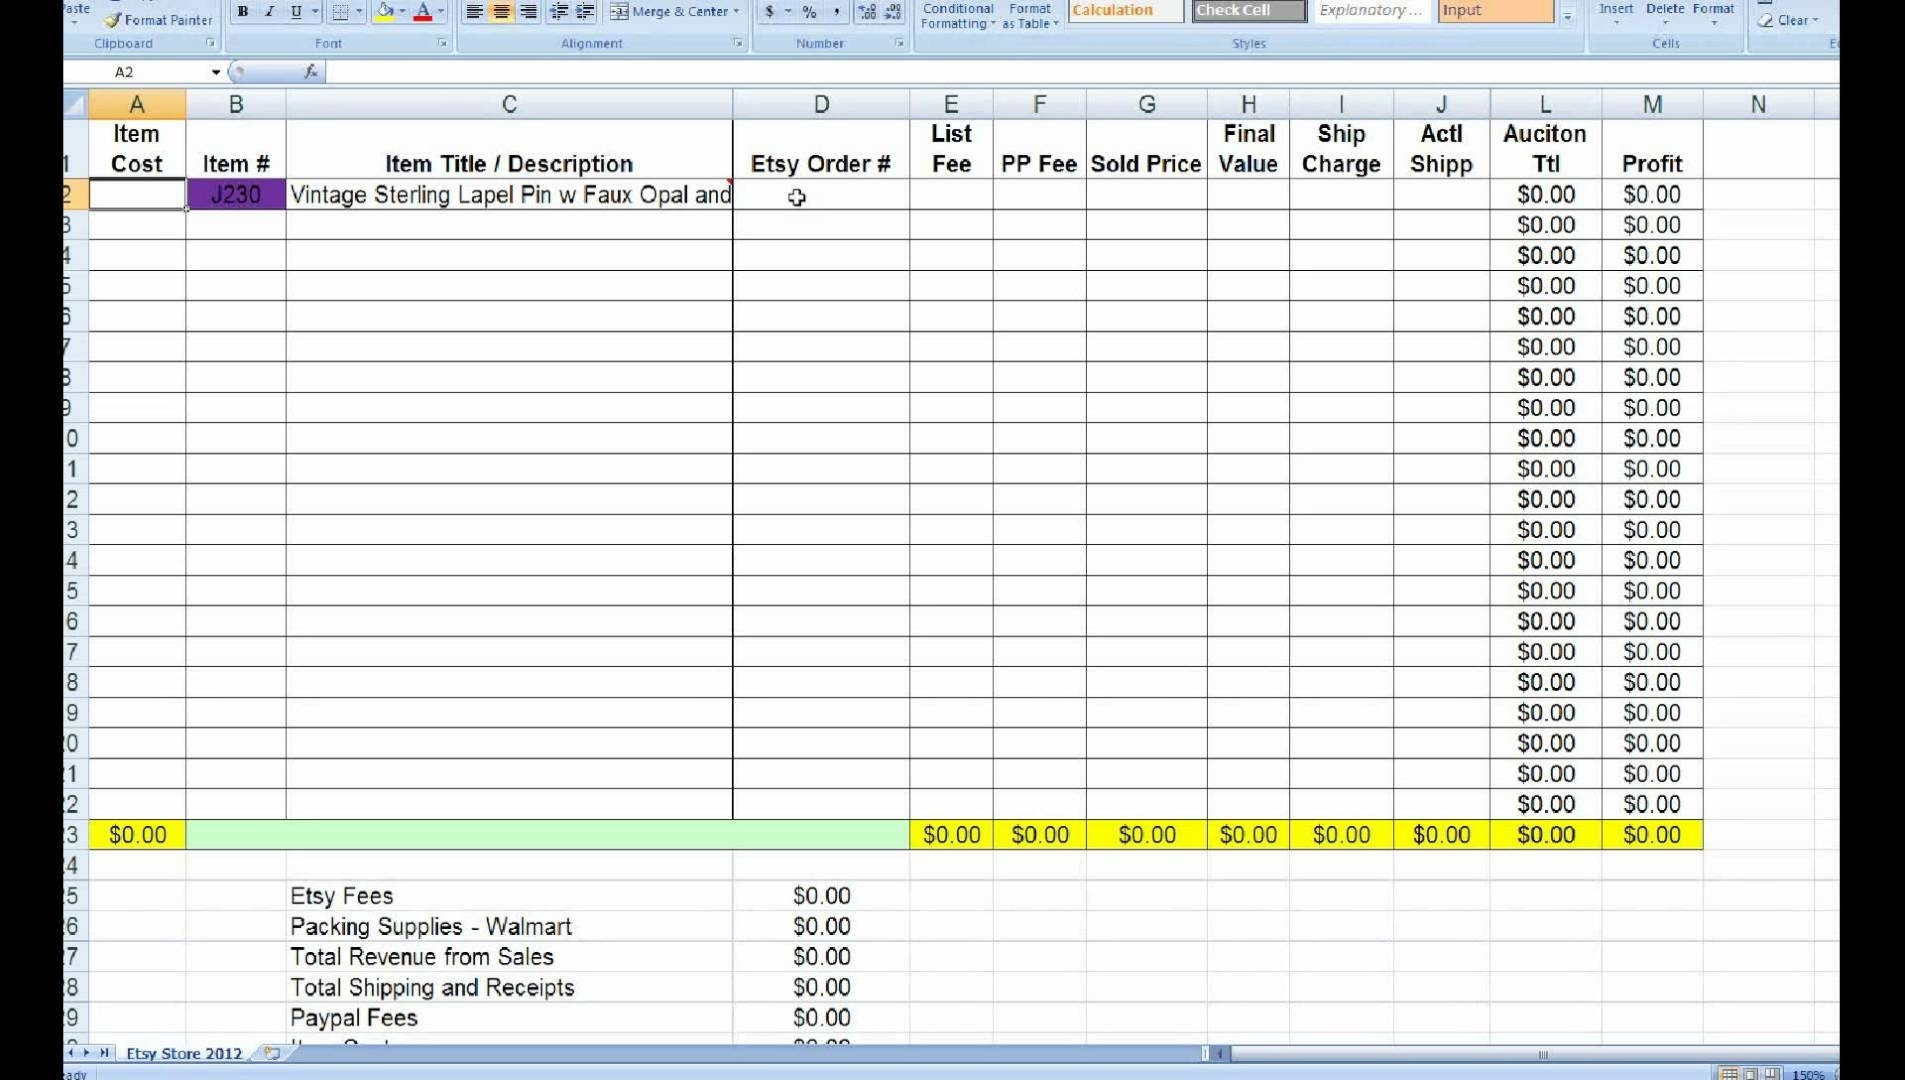 How To Make A Simple Inventory Spreadsheet Spreadsheet Software To How To Make A Simple Inventory Spreadsheet